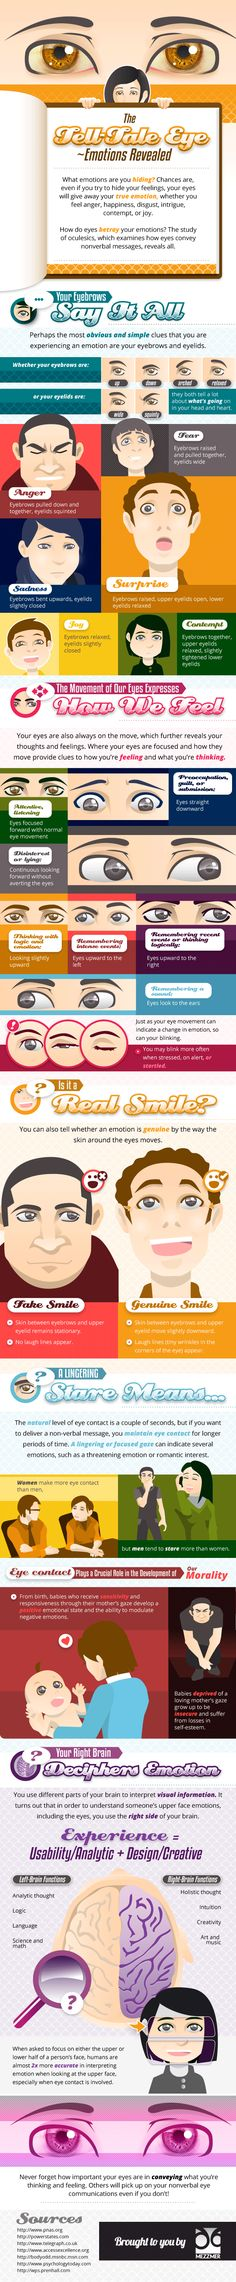 Reading Facial Expressions Infographic